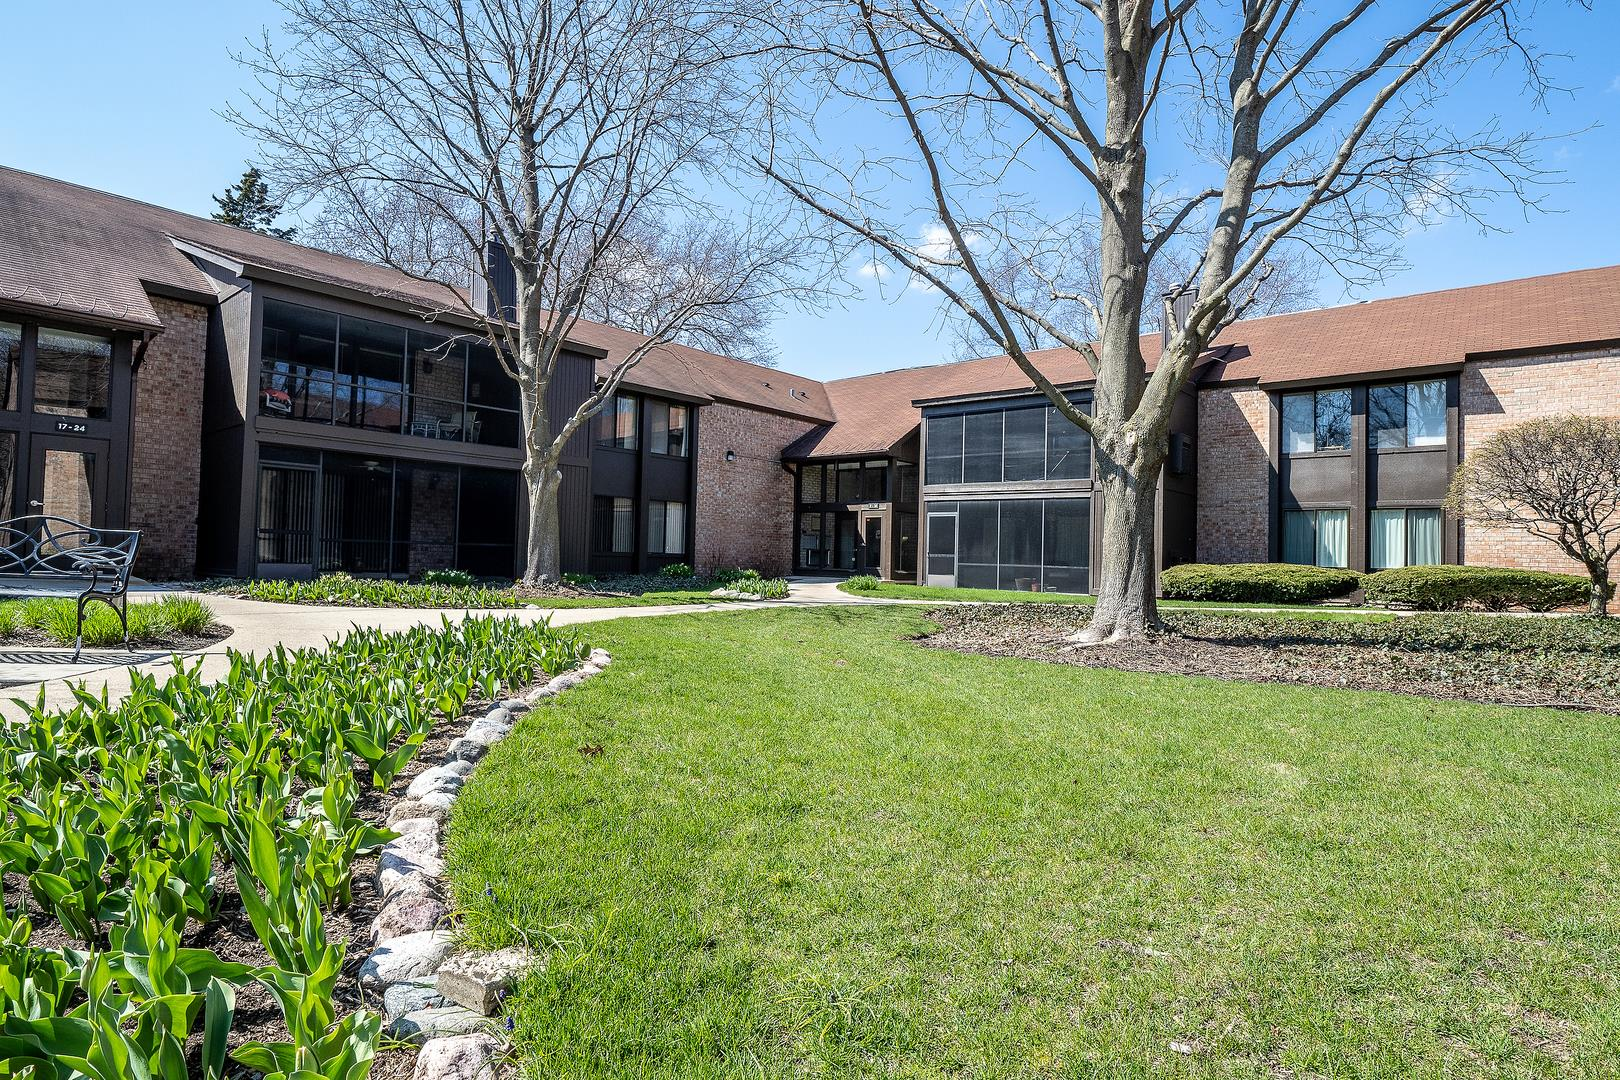 710 Saint Andrews Lane #10, Crystal Lake, IL 60014 - #: 10693393